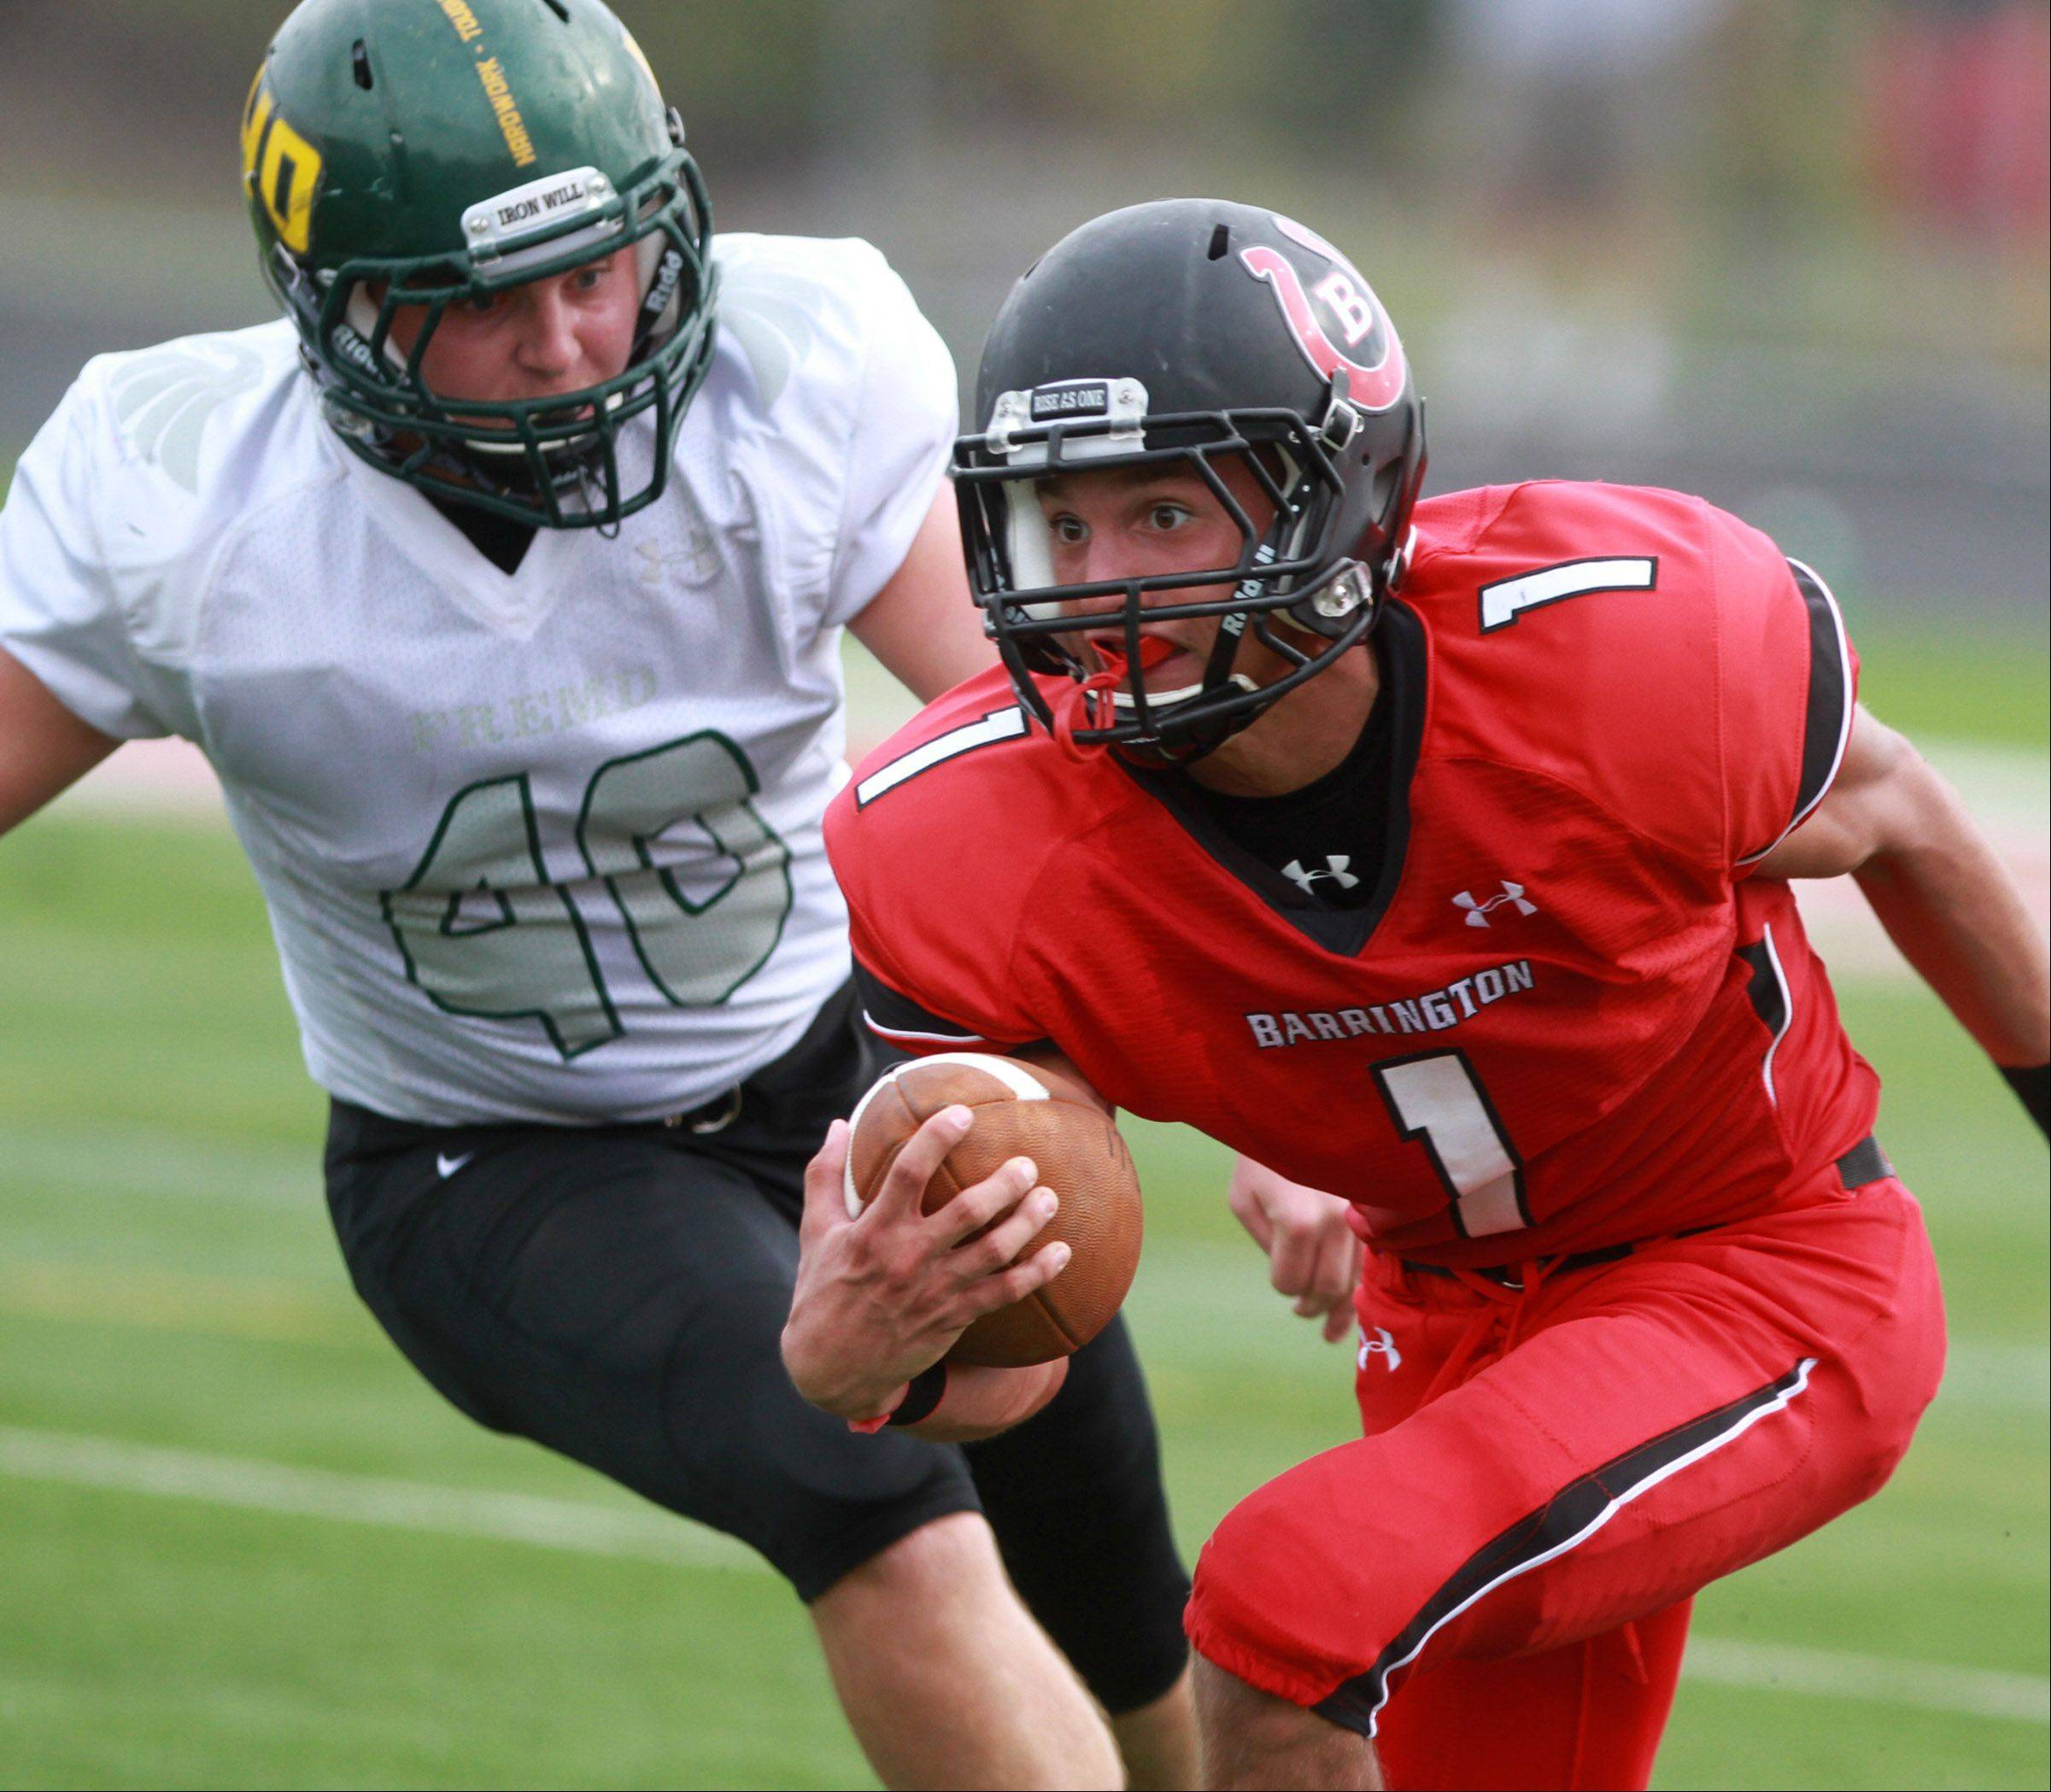 Barrington's Scotty Miller escapes Fremd defender Ryan Tarallo at Barrington on Saturday.